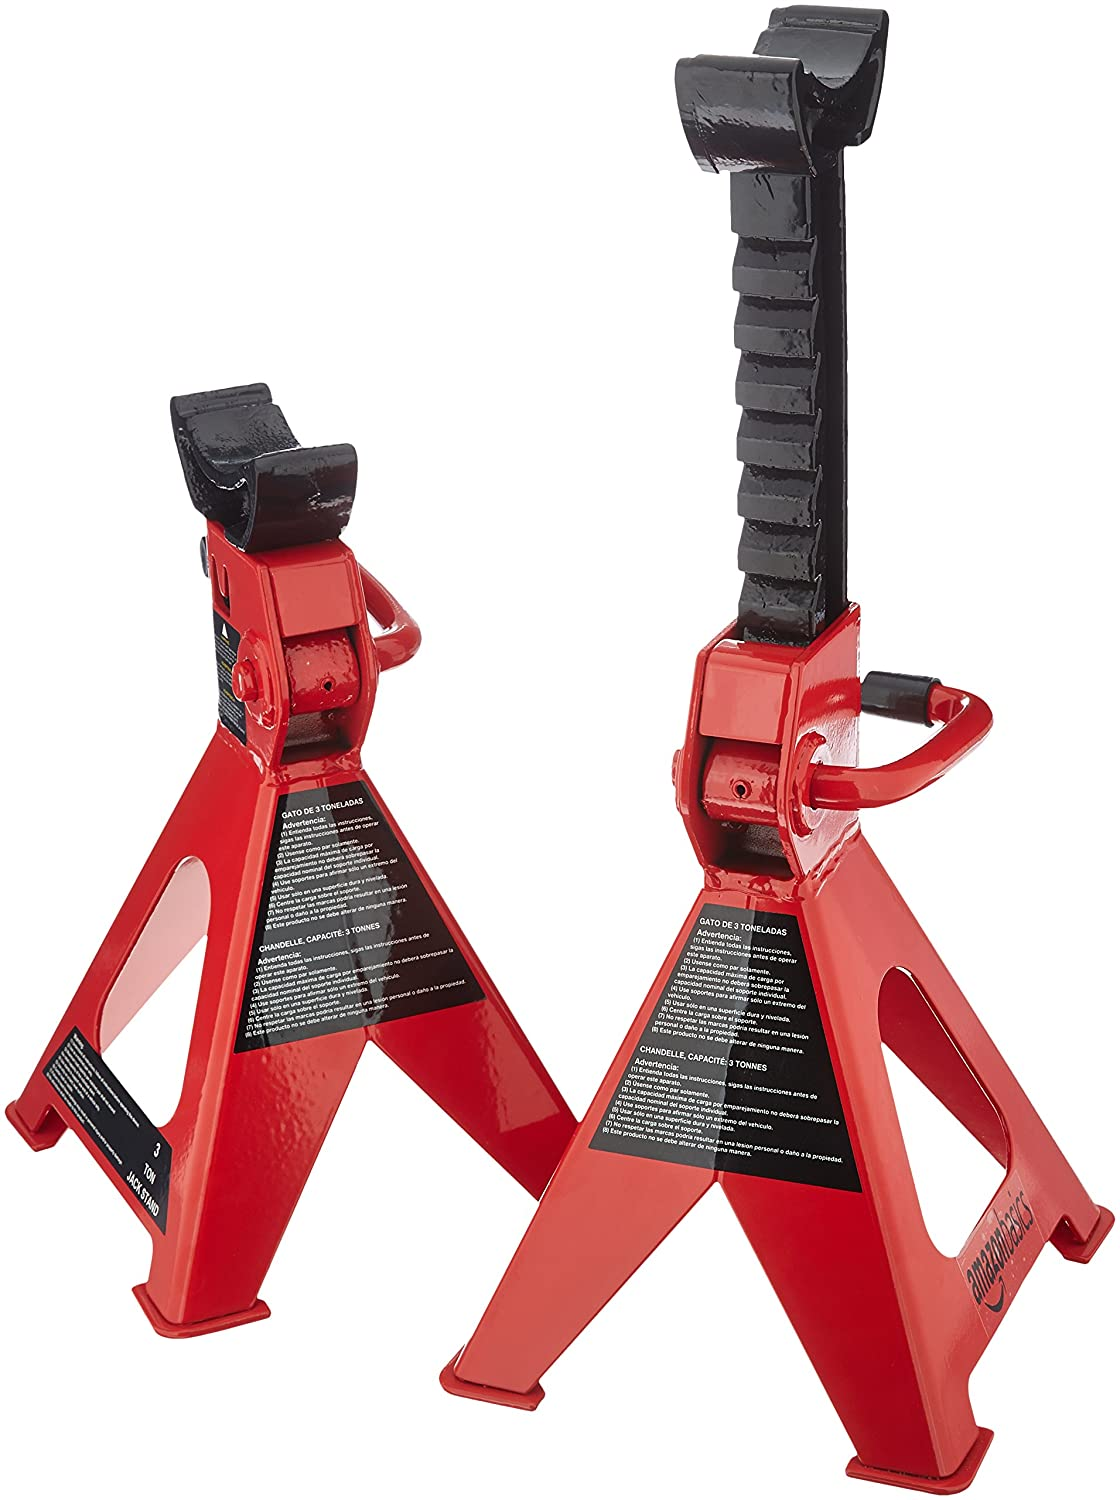 1 Pair /& Draper 54500 Rubber Wheel Chocks Basics Steel Jack Stands Pair 2 Ton Capacity